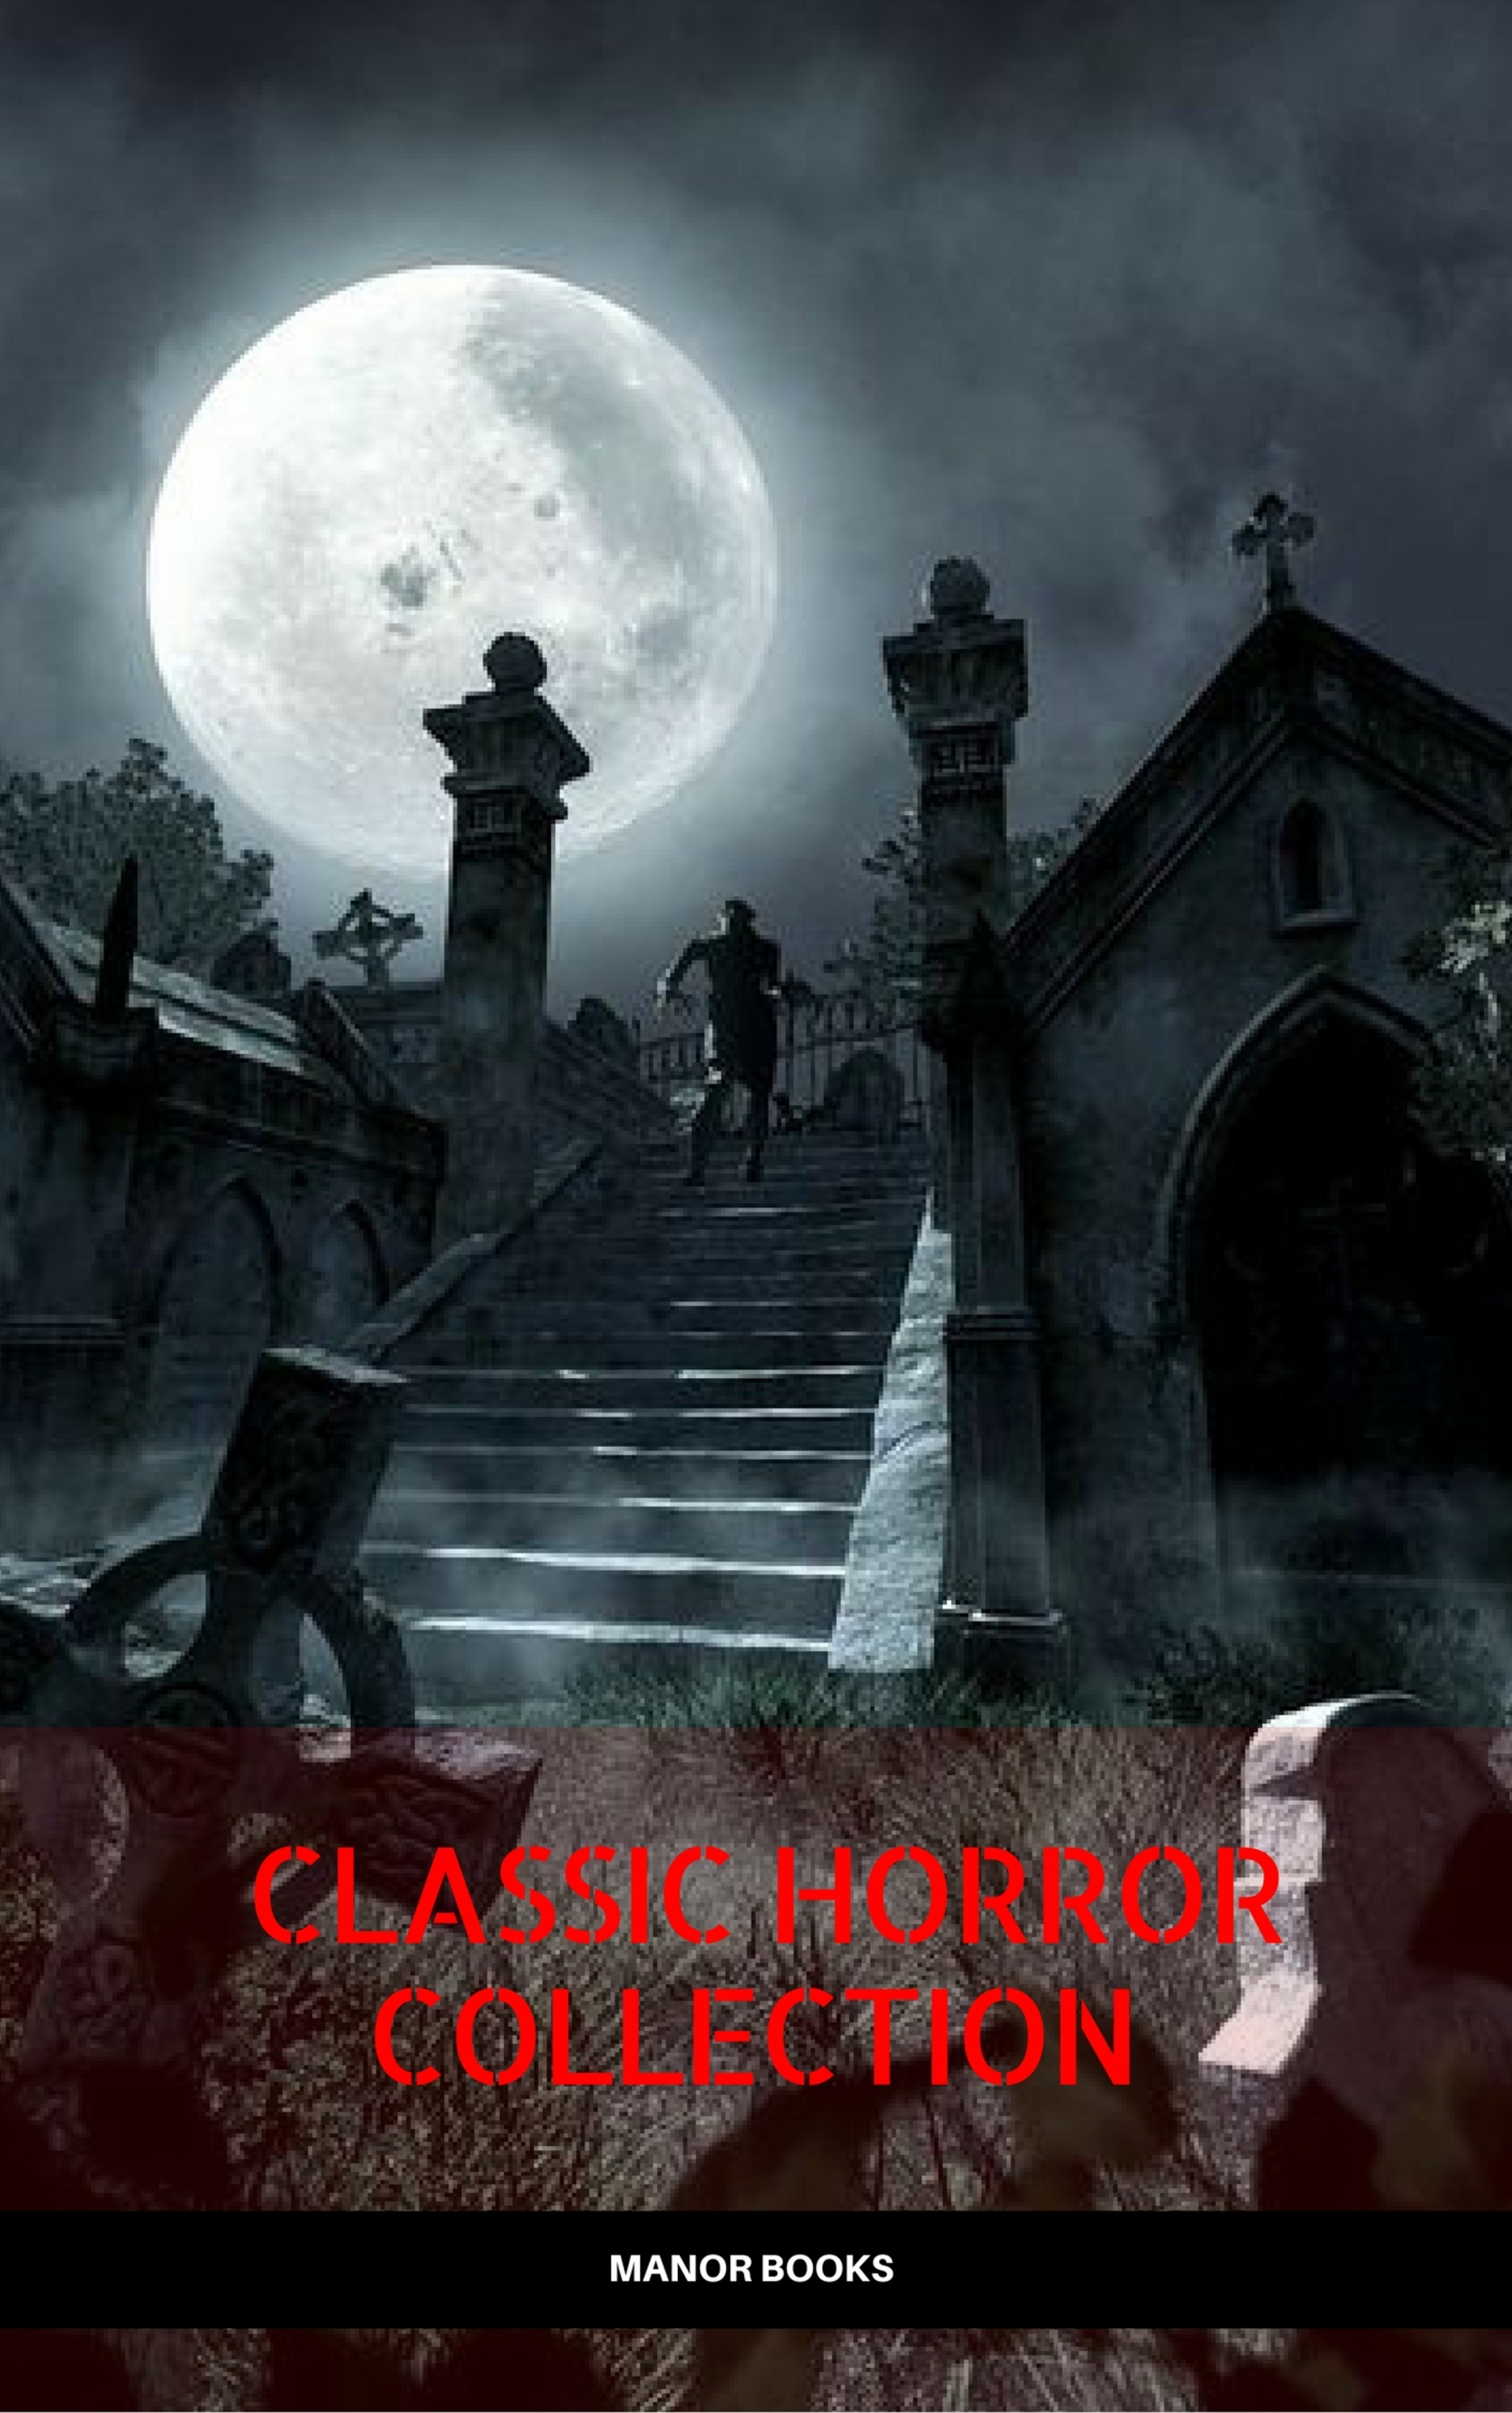 Мэри Шелли Classic Horror Collection: Dracula, Frankenstein, The Legend of Sleepy Hollow, Jekyll and Hyde, & The Island of Dr. Moreau (Manor Books) the legend of sleepy hollow and other stories